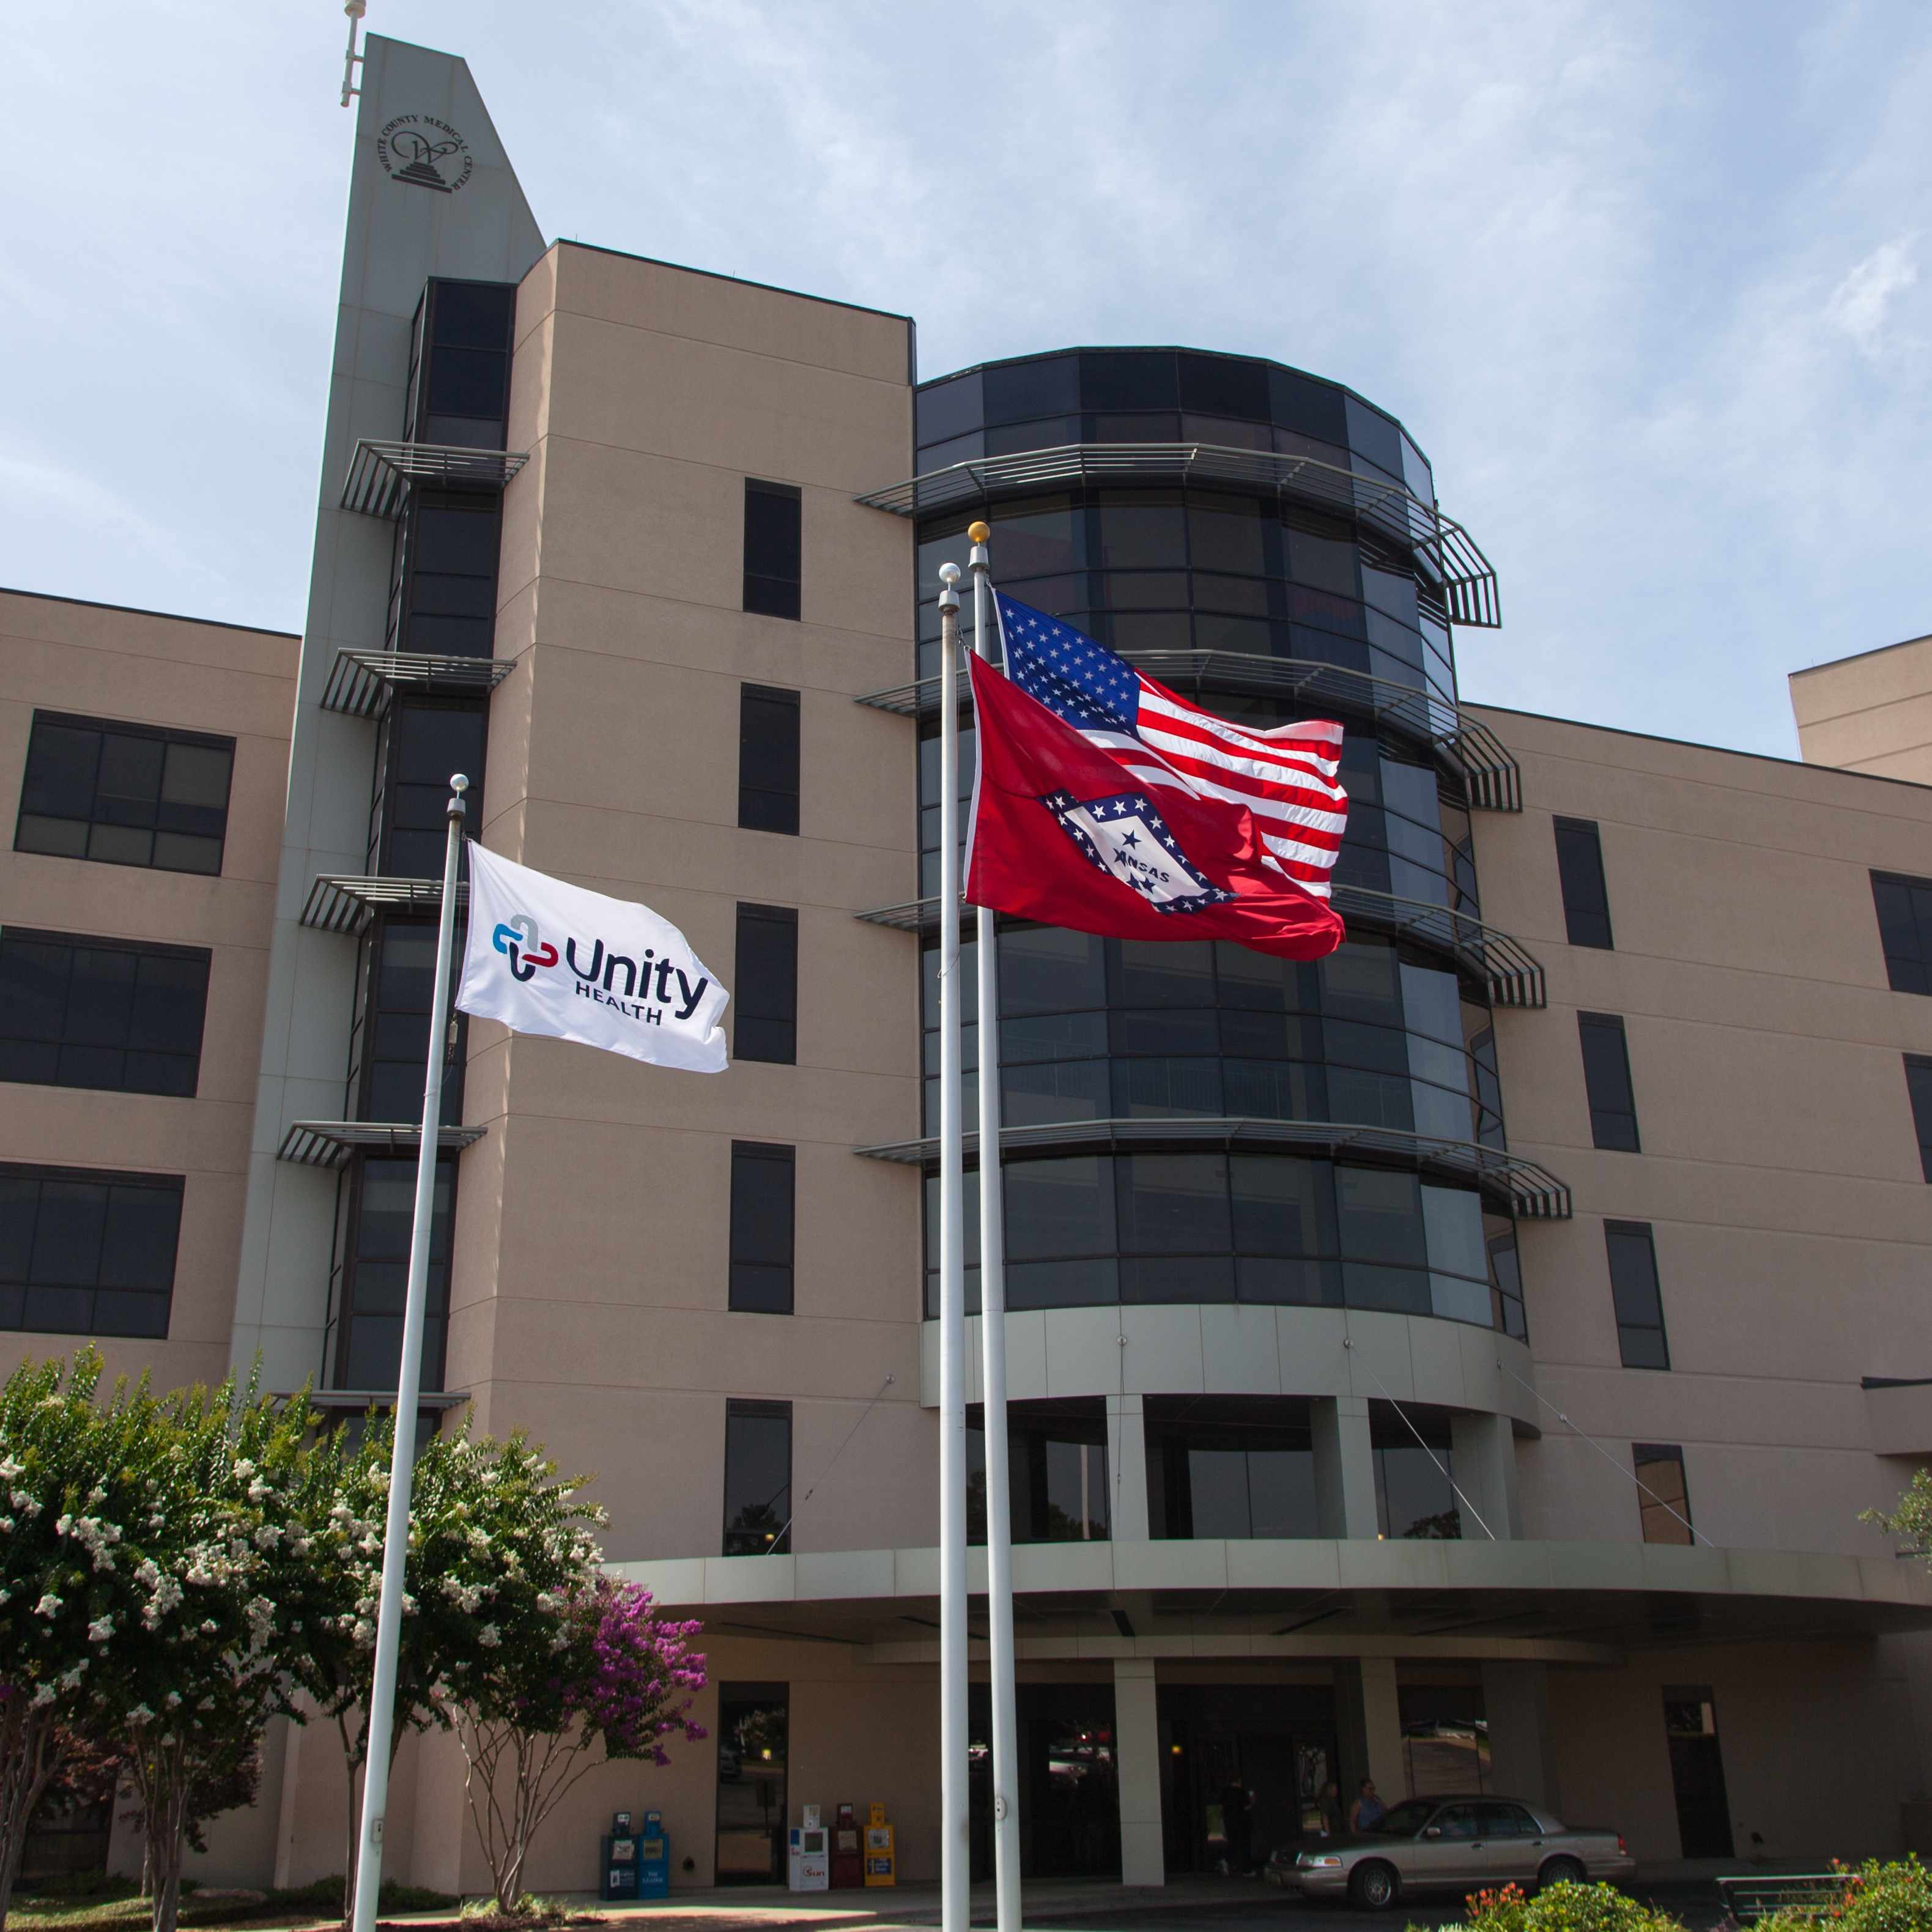 Front view of Unity Health 1x1 square